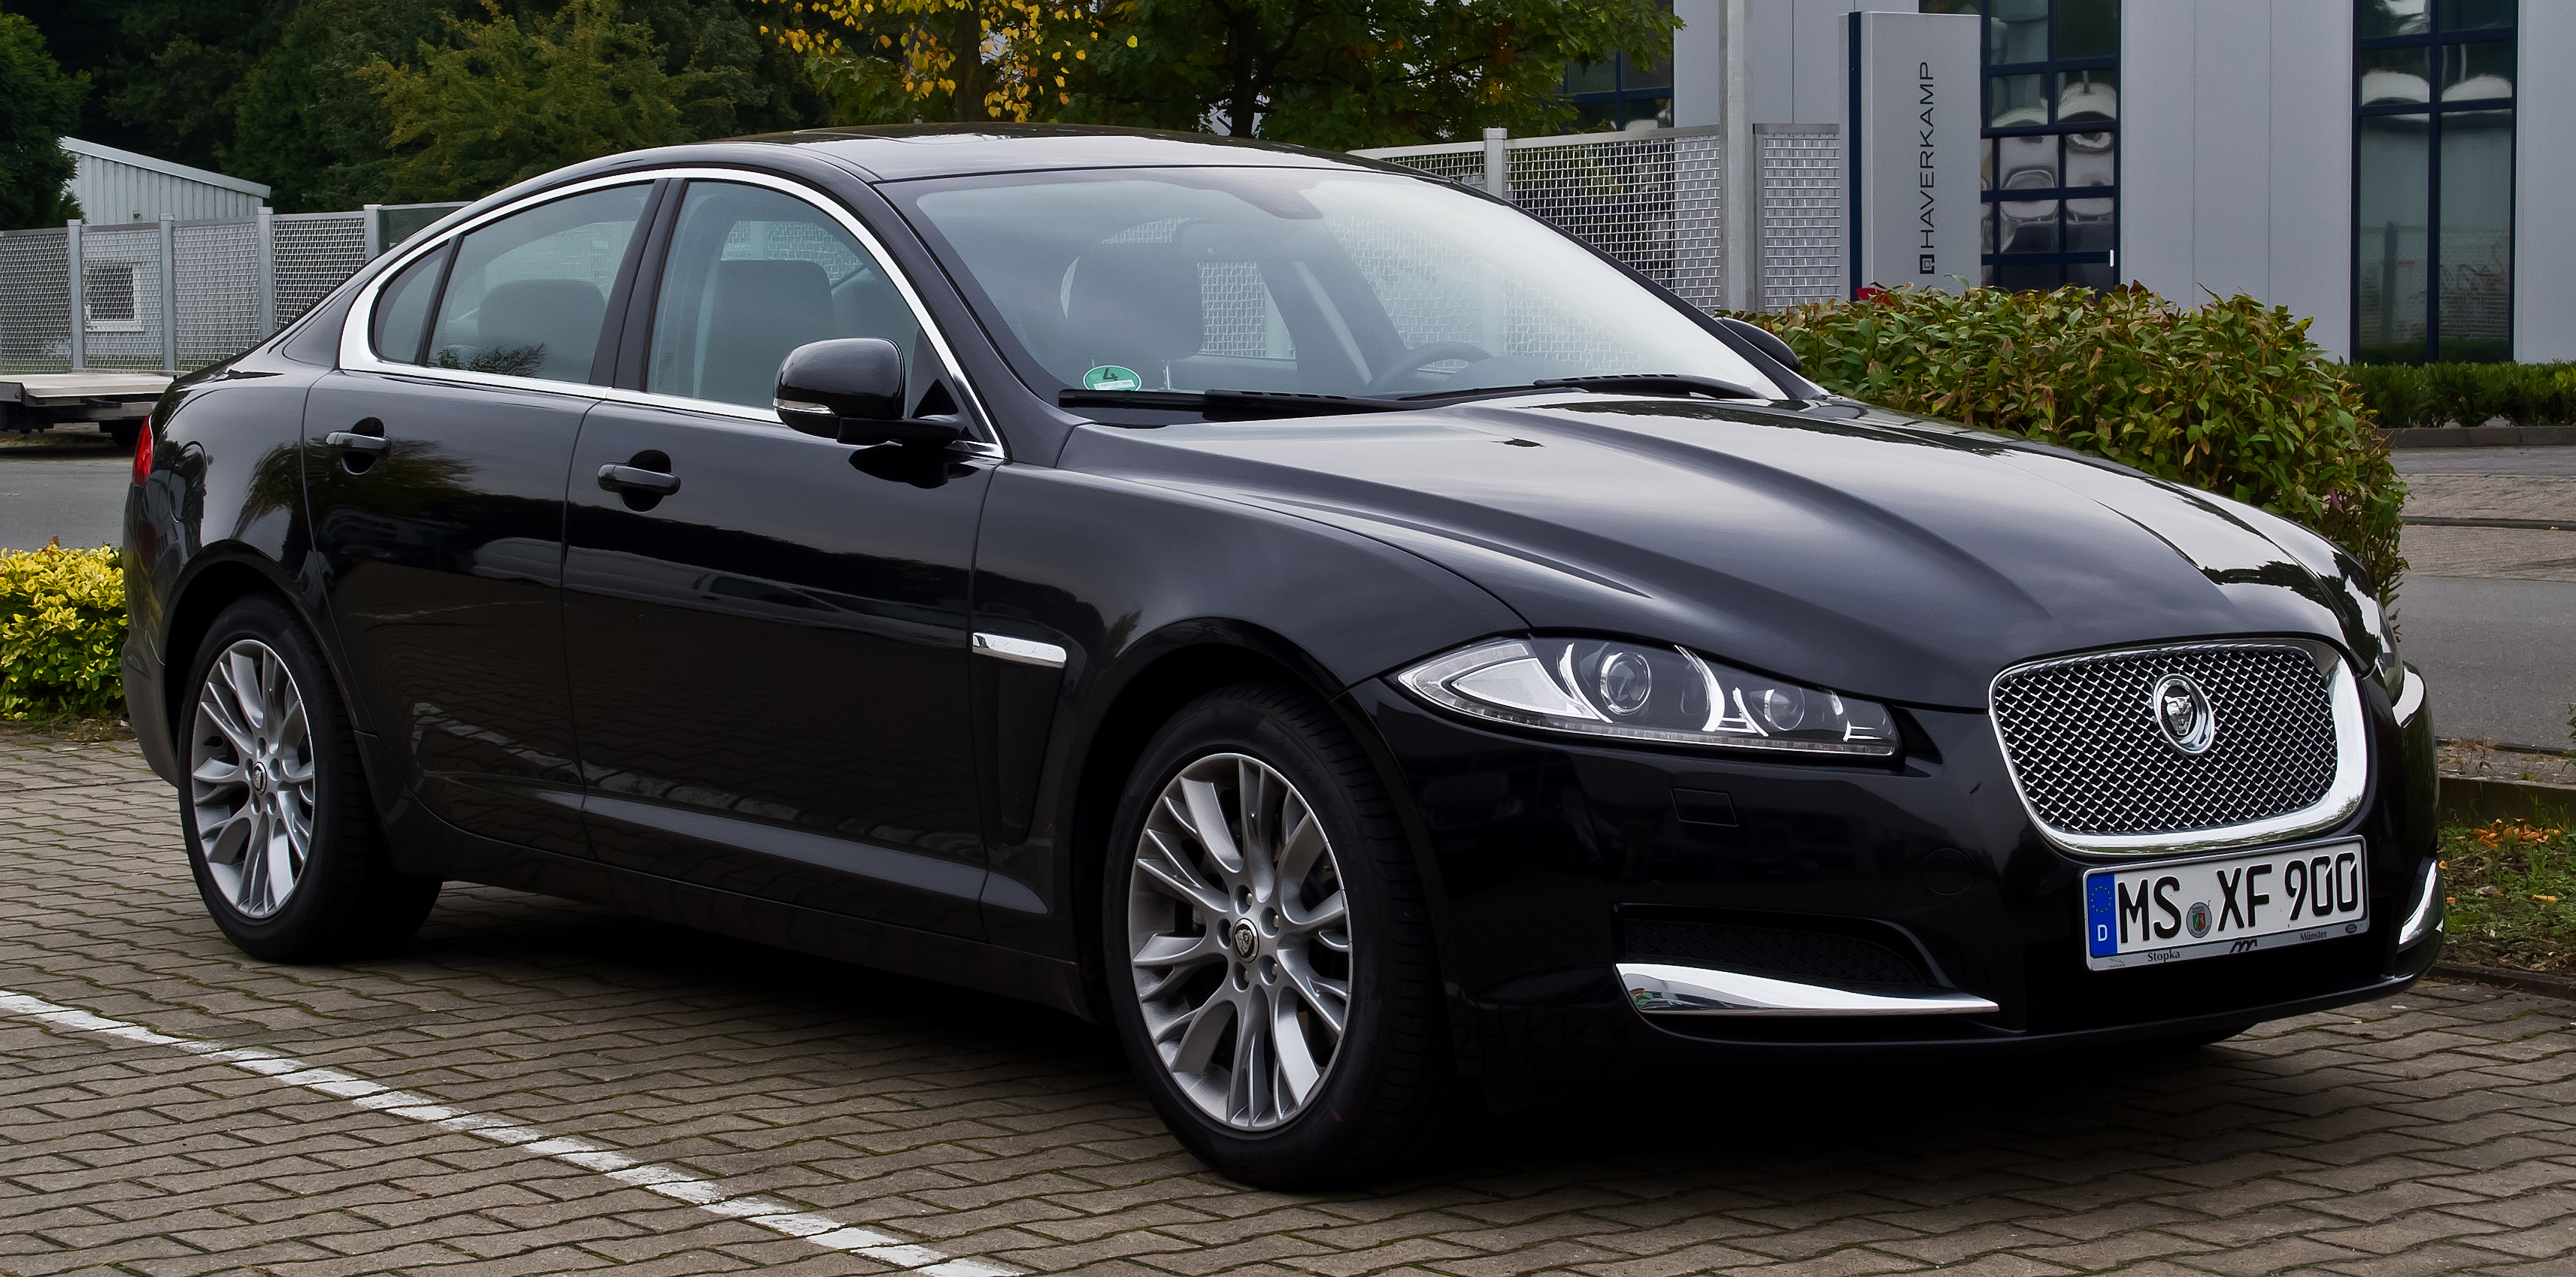 to view three debut june jaguar news front in prototype xf sportbrake features quarters side